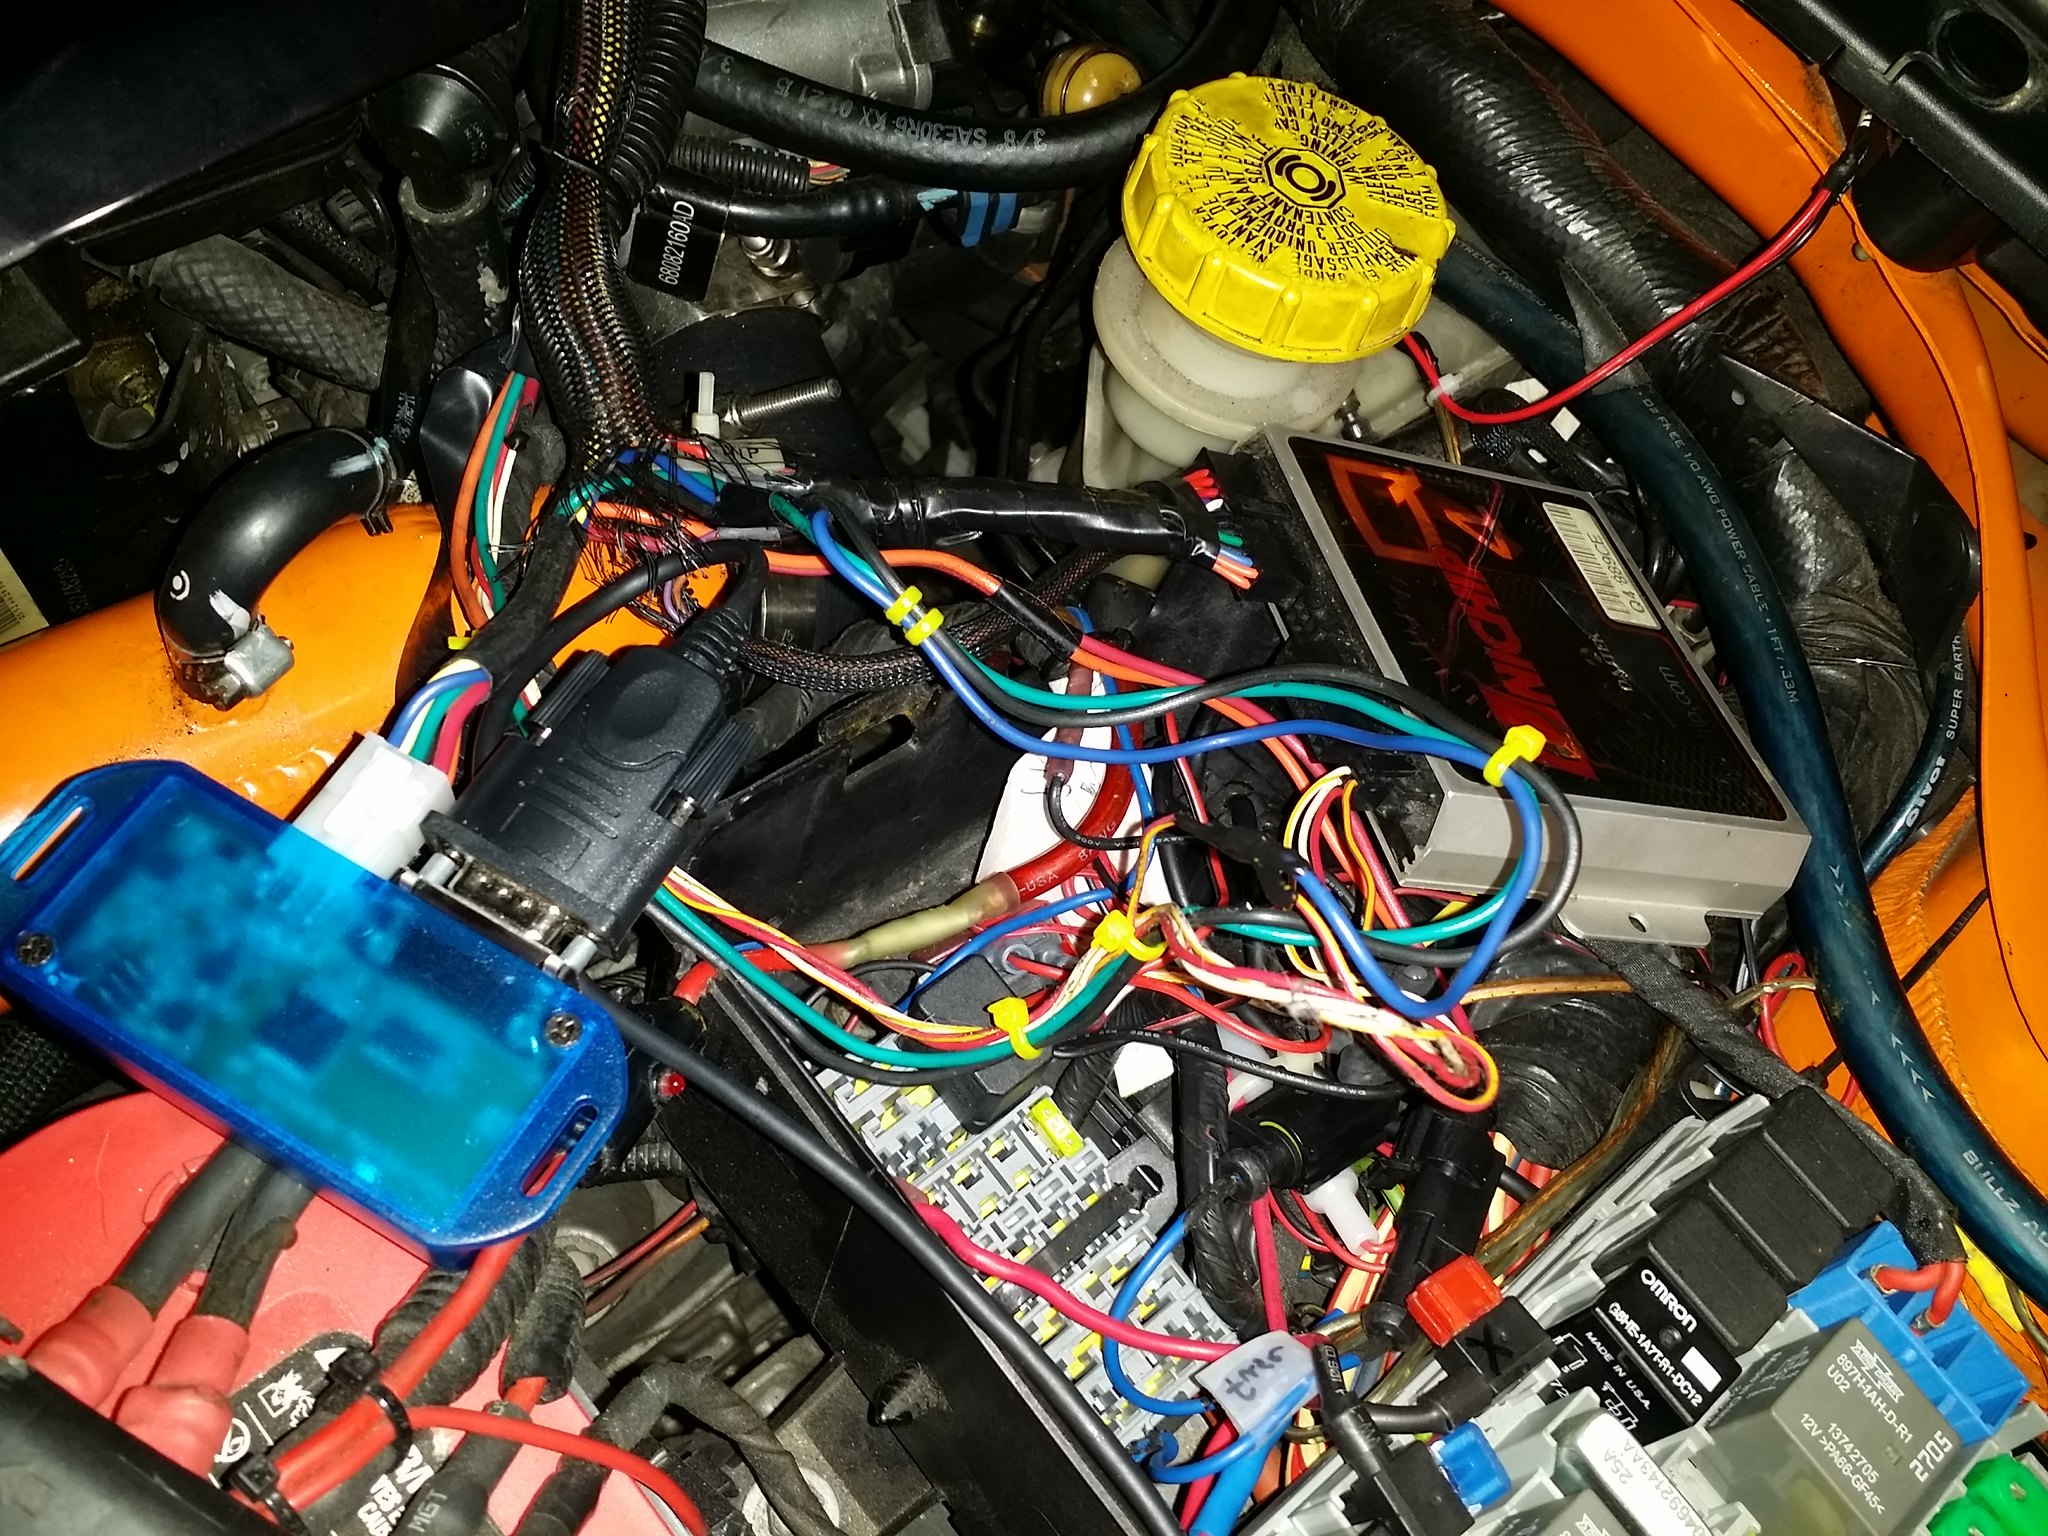 30363414281_18178c7120_k?resize\=474%2C356\&ssl\=1 wiring on dodge underhood fuse box underside view 2000 dodge ram  at alyssarenee.co